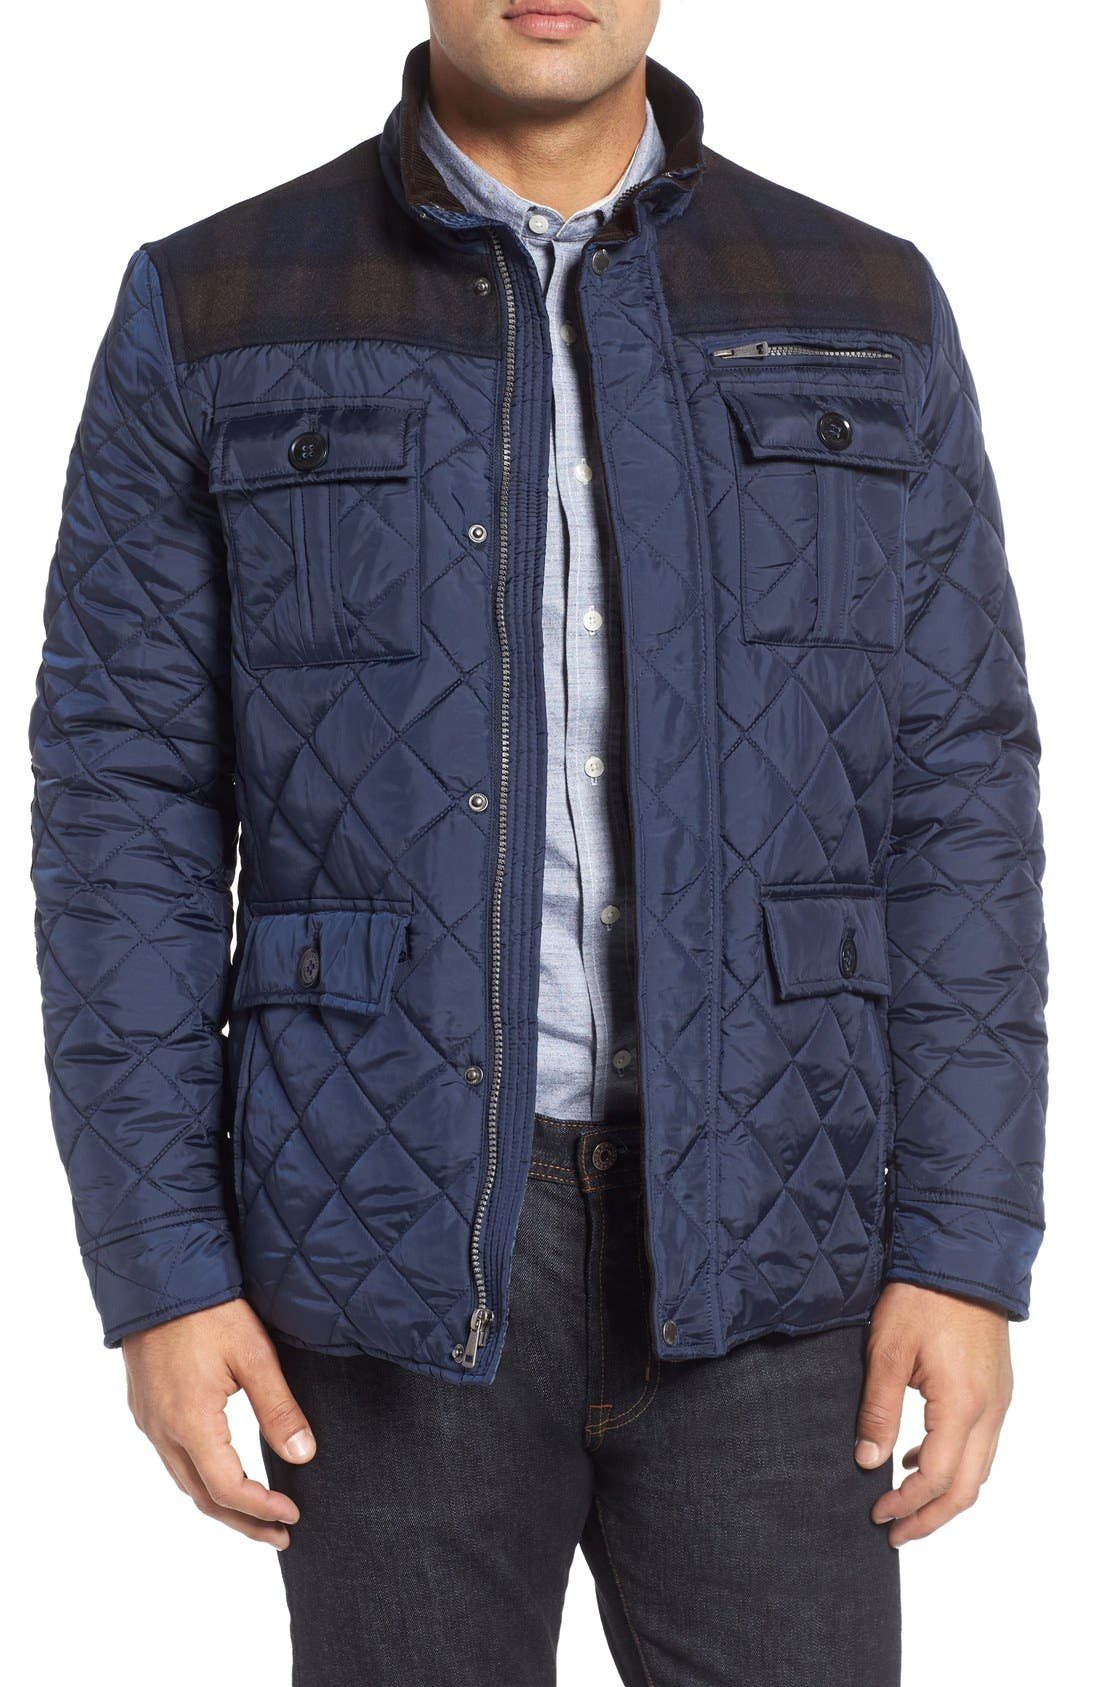 Alternate Image 1 Selected - Cole Haan Mixed Media Quilted Jacket